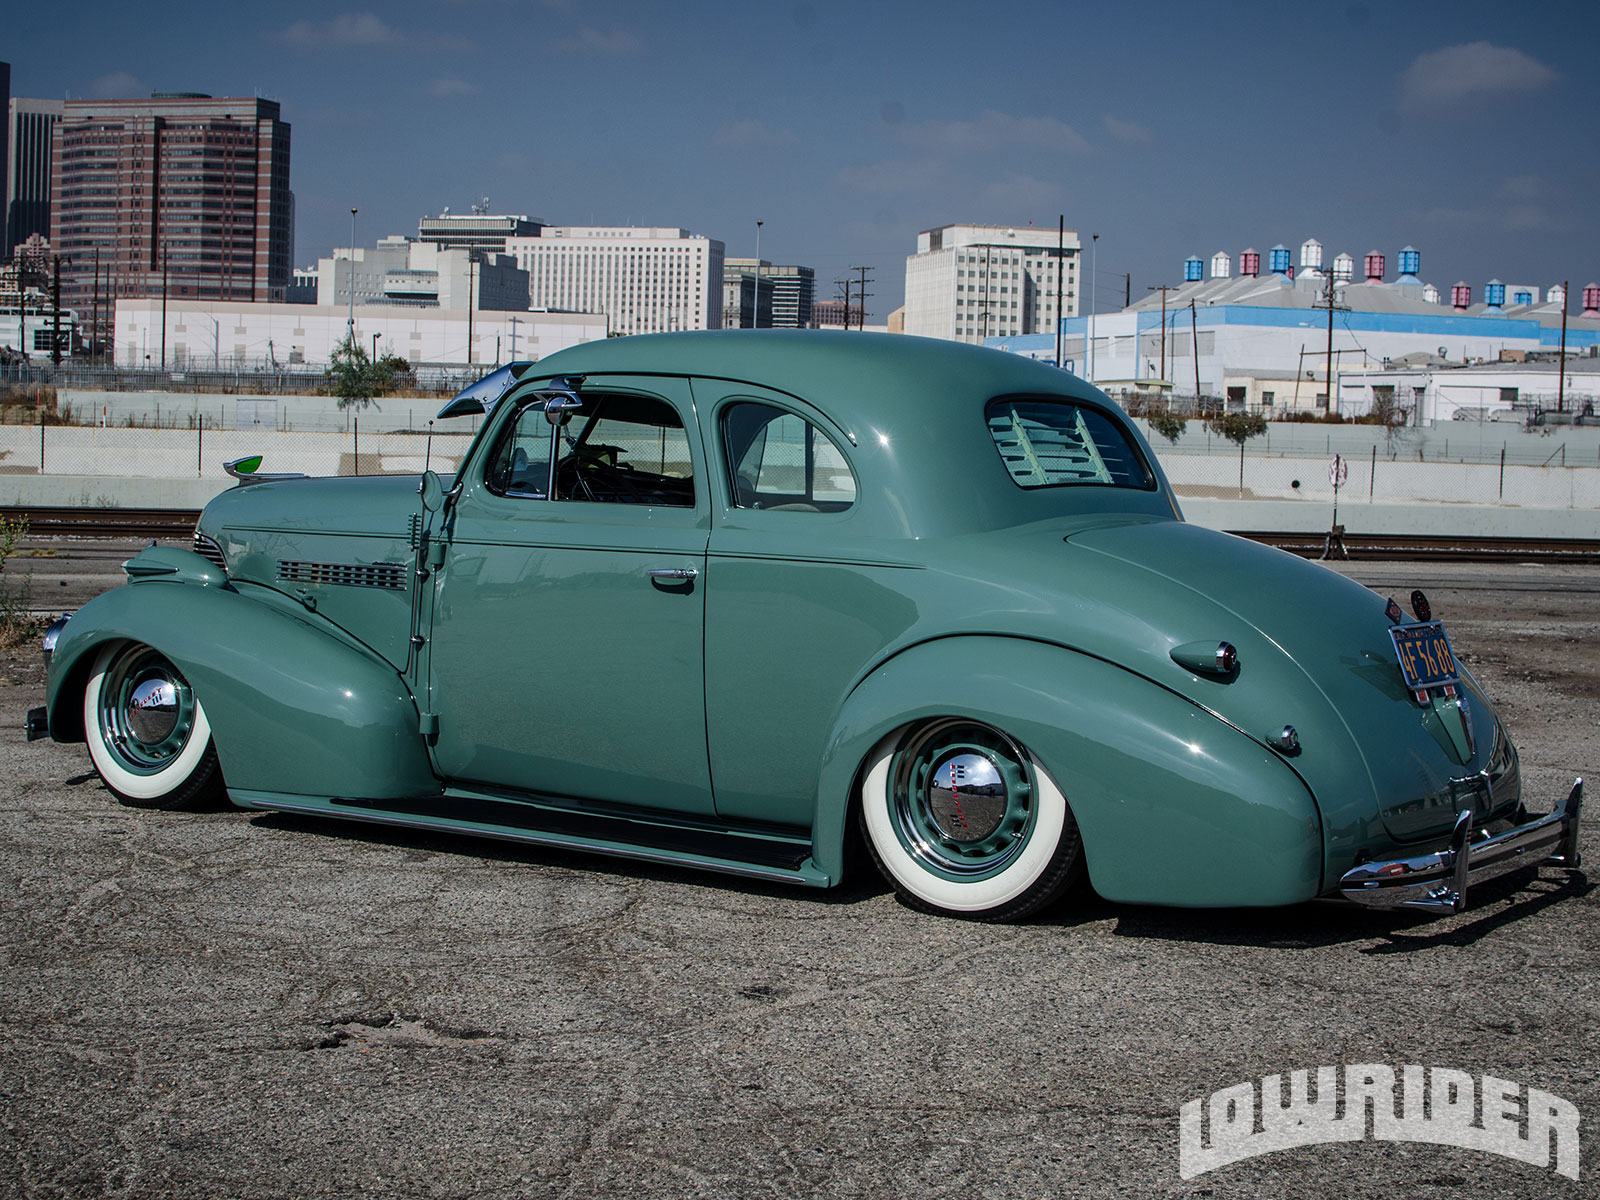 1939 Chevrolet Business Coupe - Lowrider Magazine